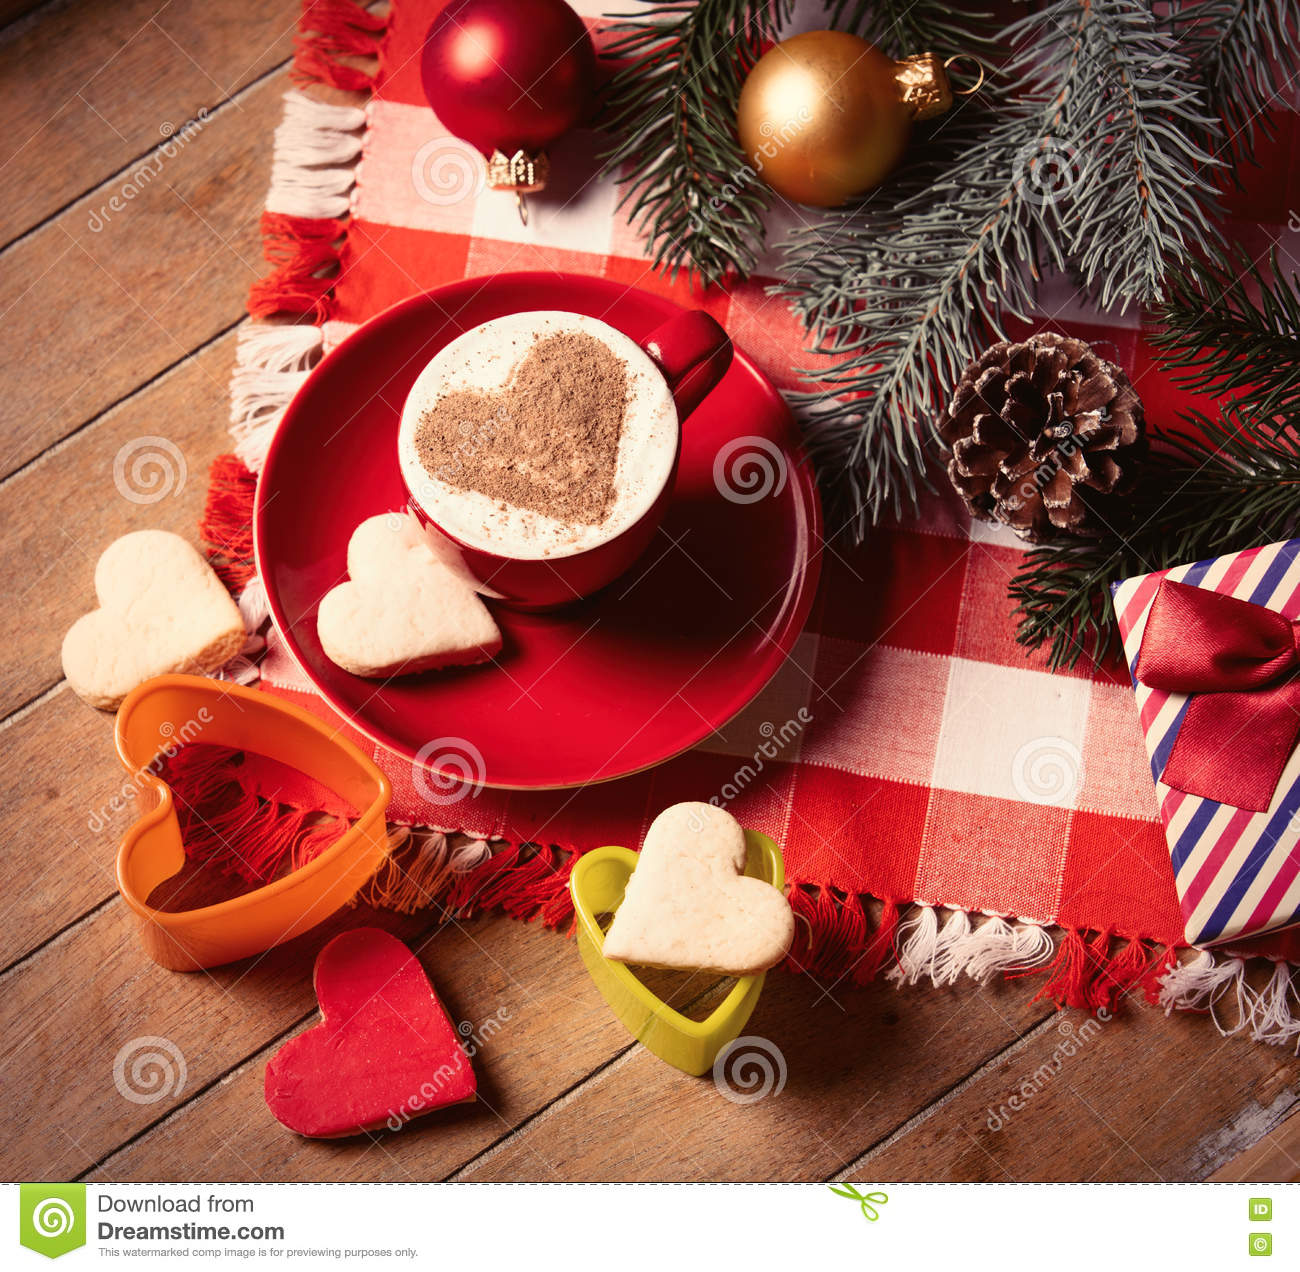 Christmas Decorations For Coffee Shops: Cup Of Coffee, Cookies And Christmas Decorations Stock